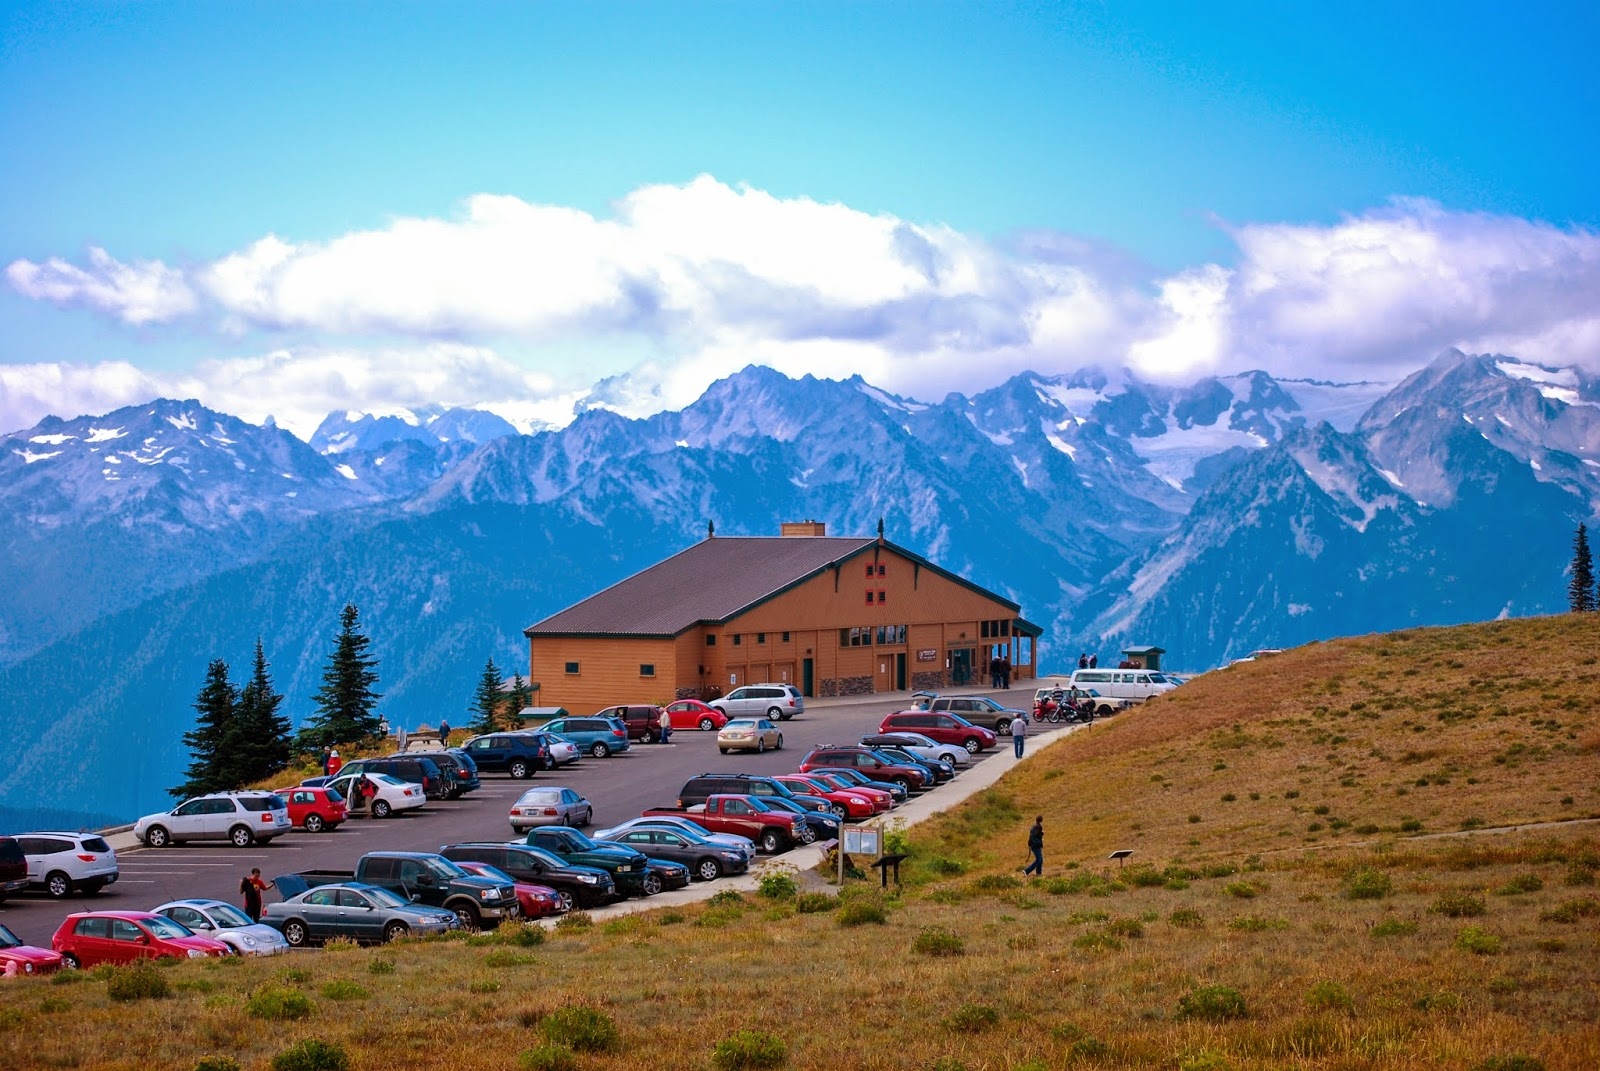 Hurricane Ridge visitor center